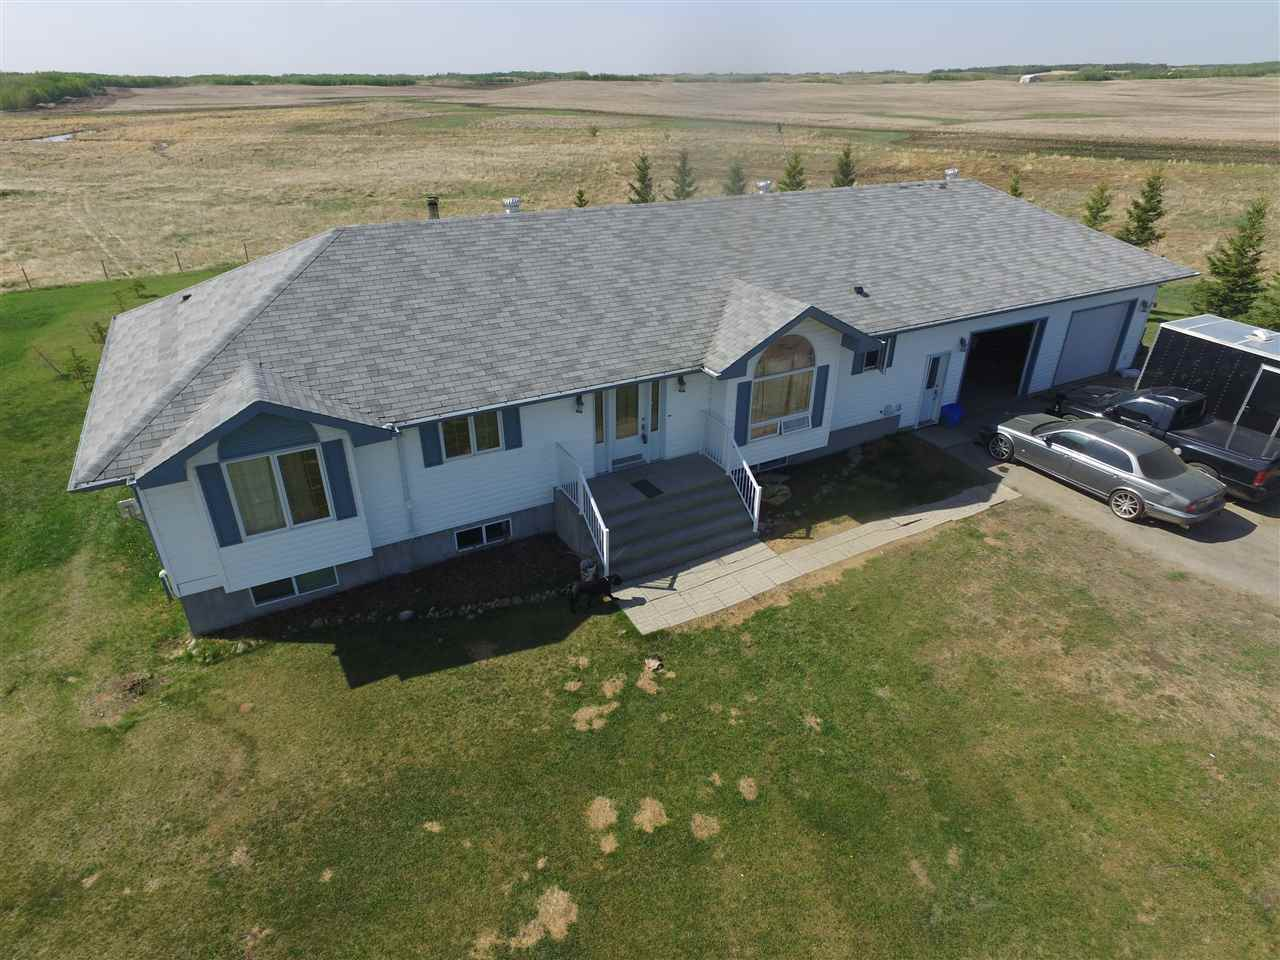 Main Photo: 22547 Hwy 616: Rural Leduc County House for sale : MLS®# E4111530